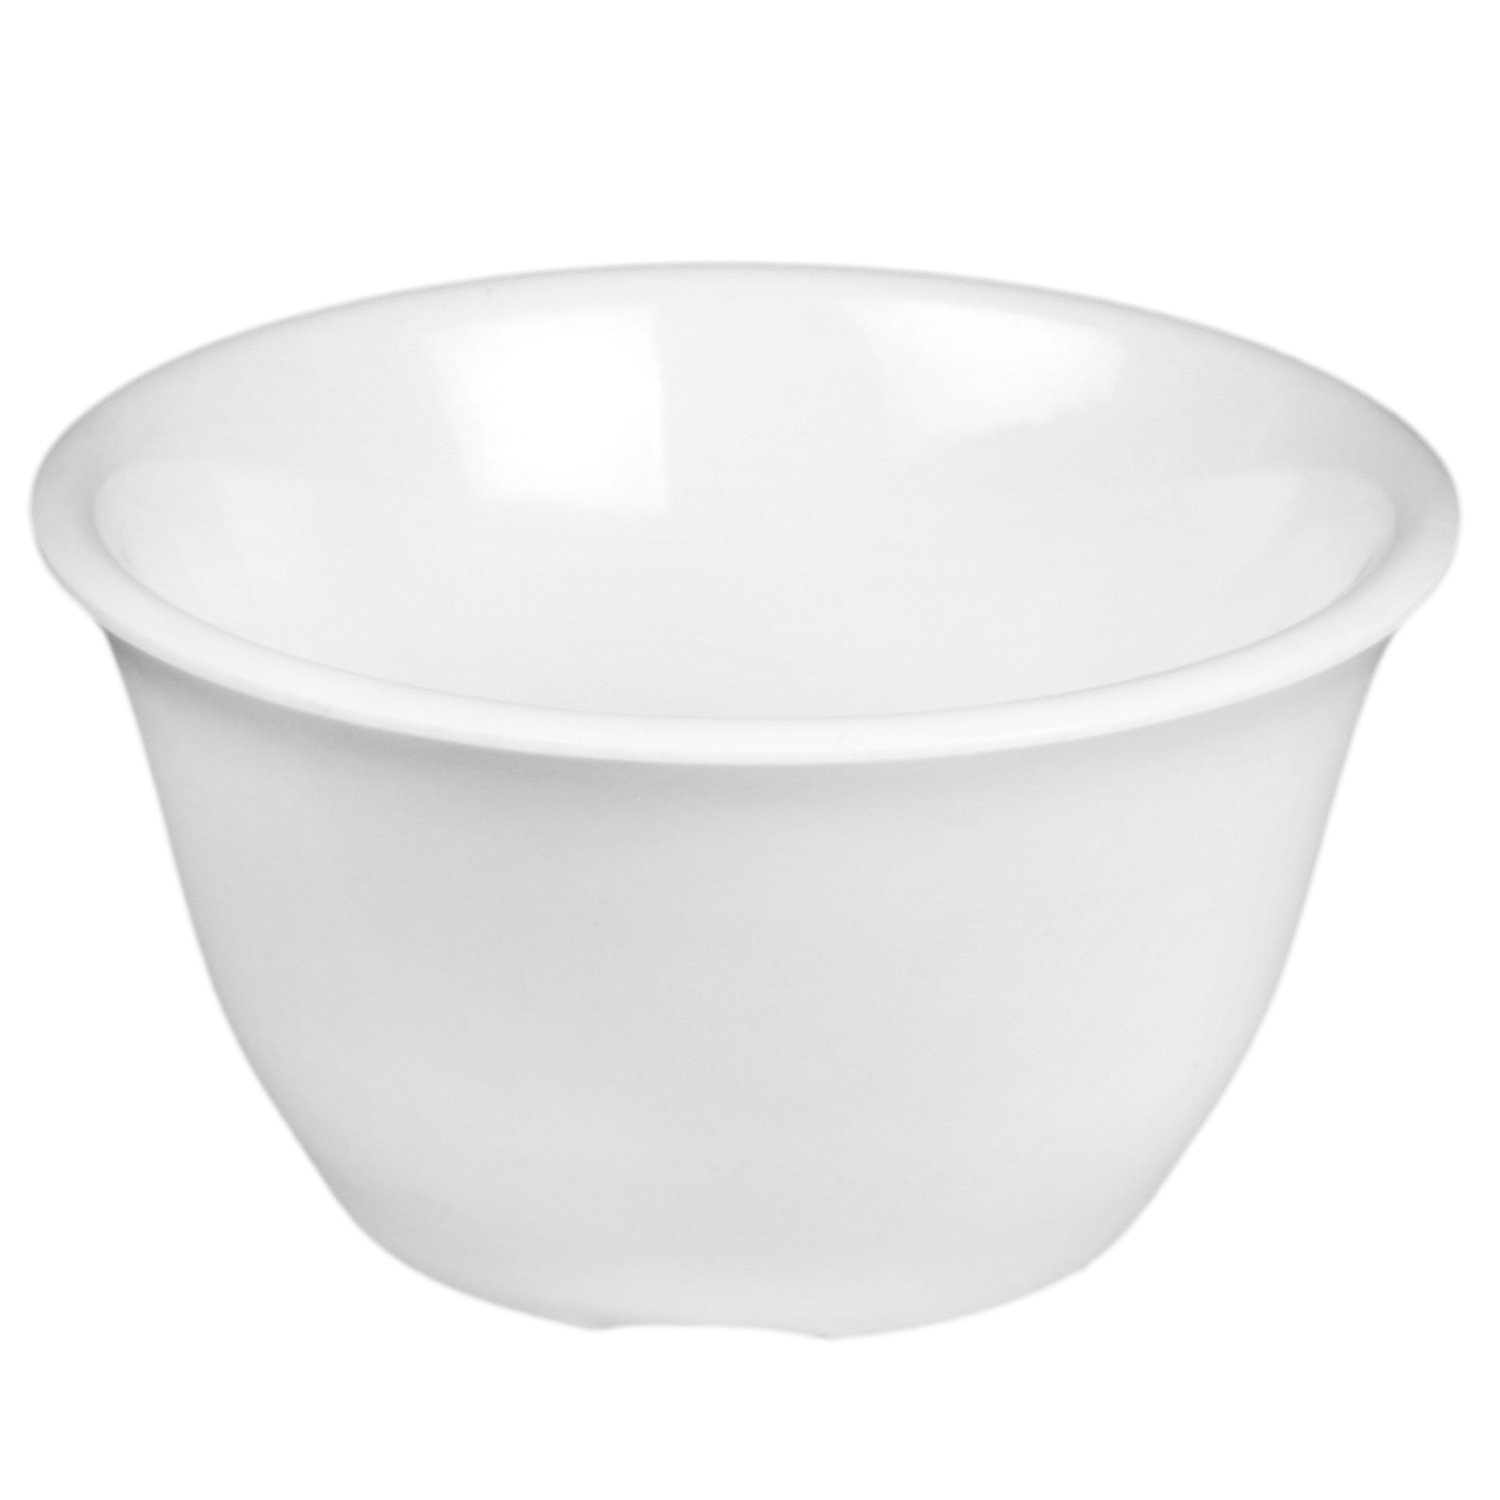 Excellanté White Melamine Collection 4-Inch Bouillon Cup, 7-Ounce, White, 12-Piece CR303W